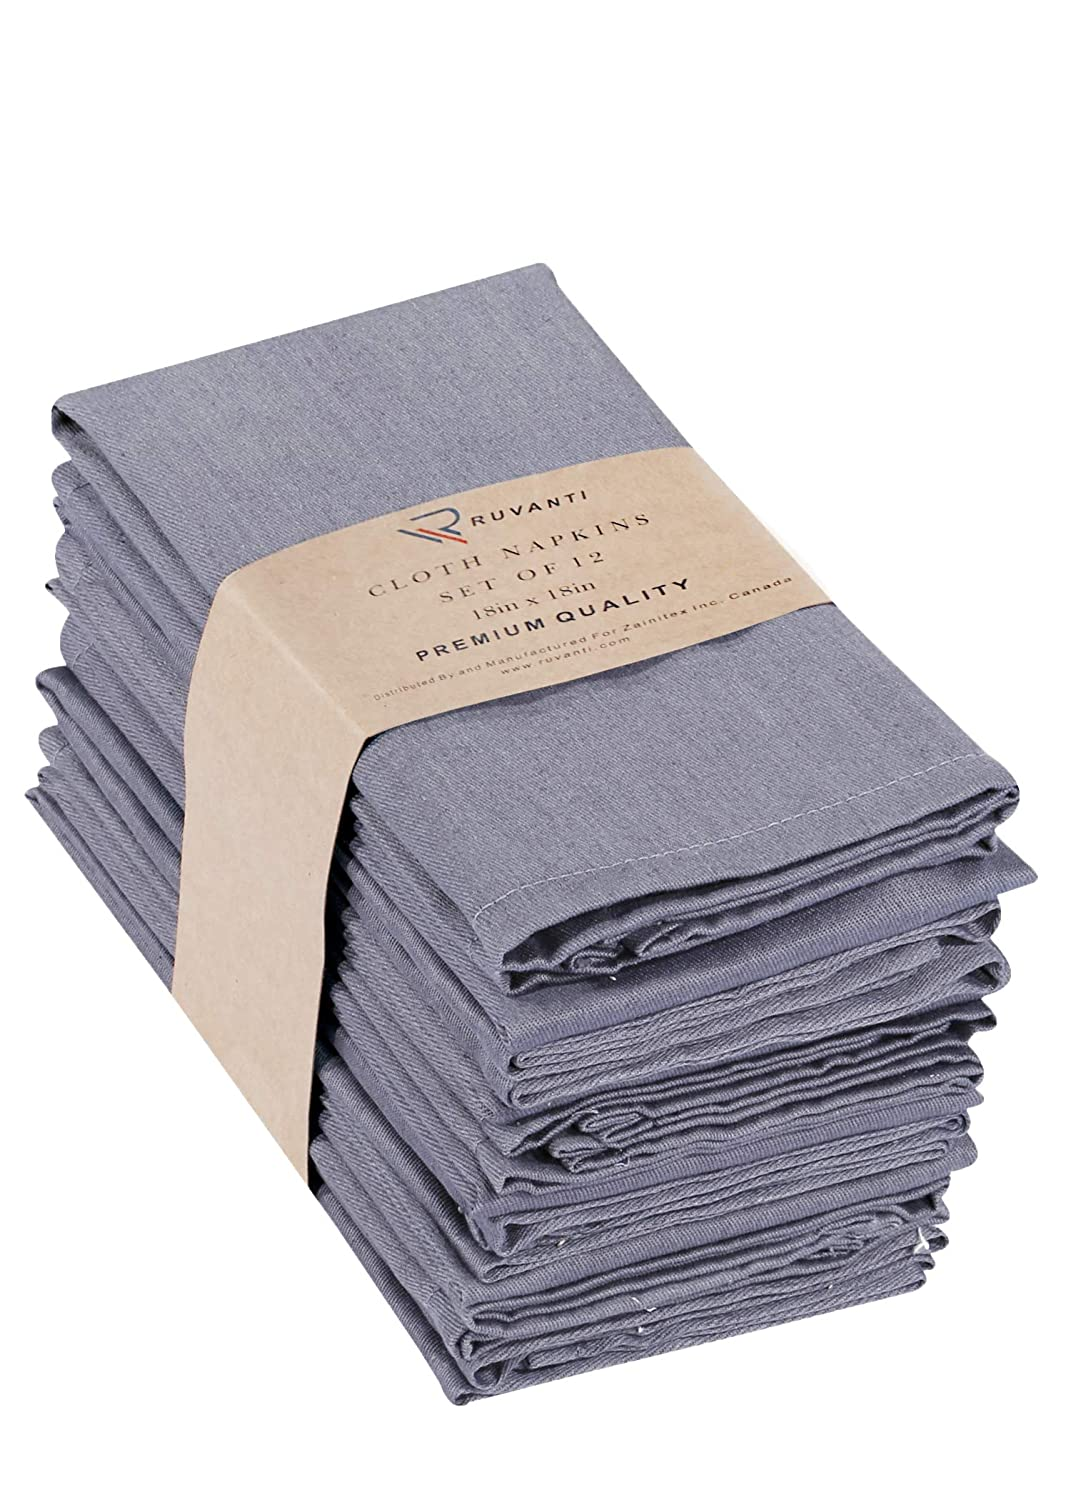 "Ruvanti Cotton Dinner Napkins 12 Pack (18"" X18""), Cloth Napkins Soft and Comfortable Reusable Napkins - Durable Linen Napkins - Perfect Table Napkins/Grey Napkins for Family Dinners, Weddings."